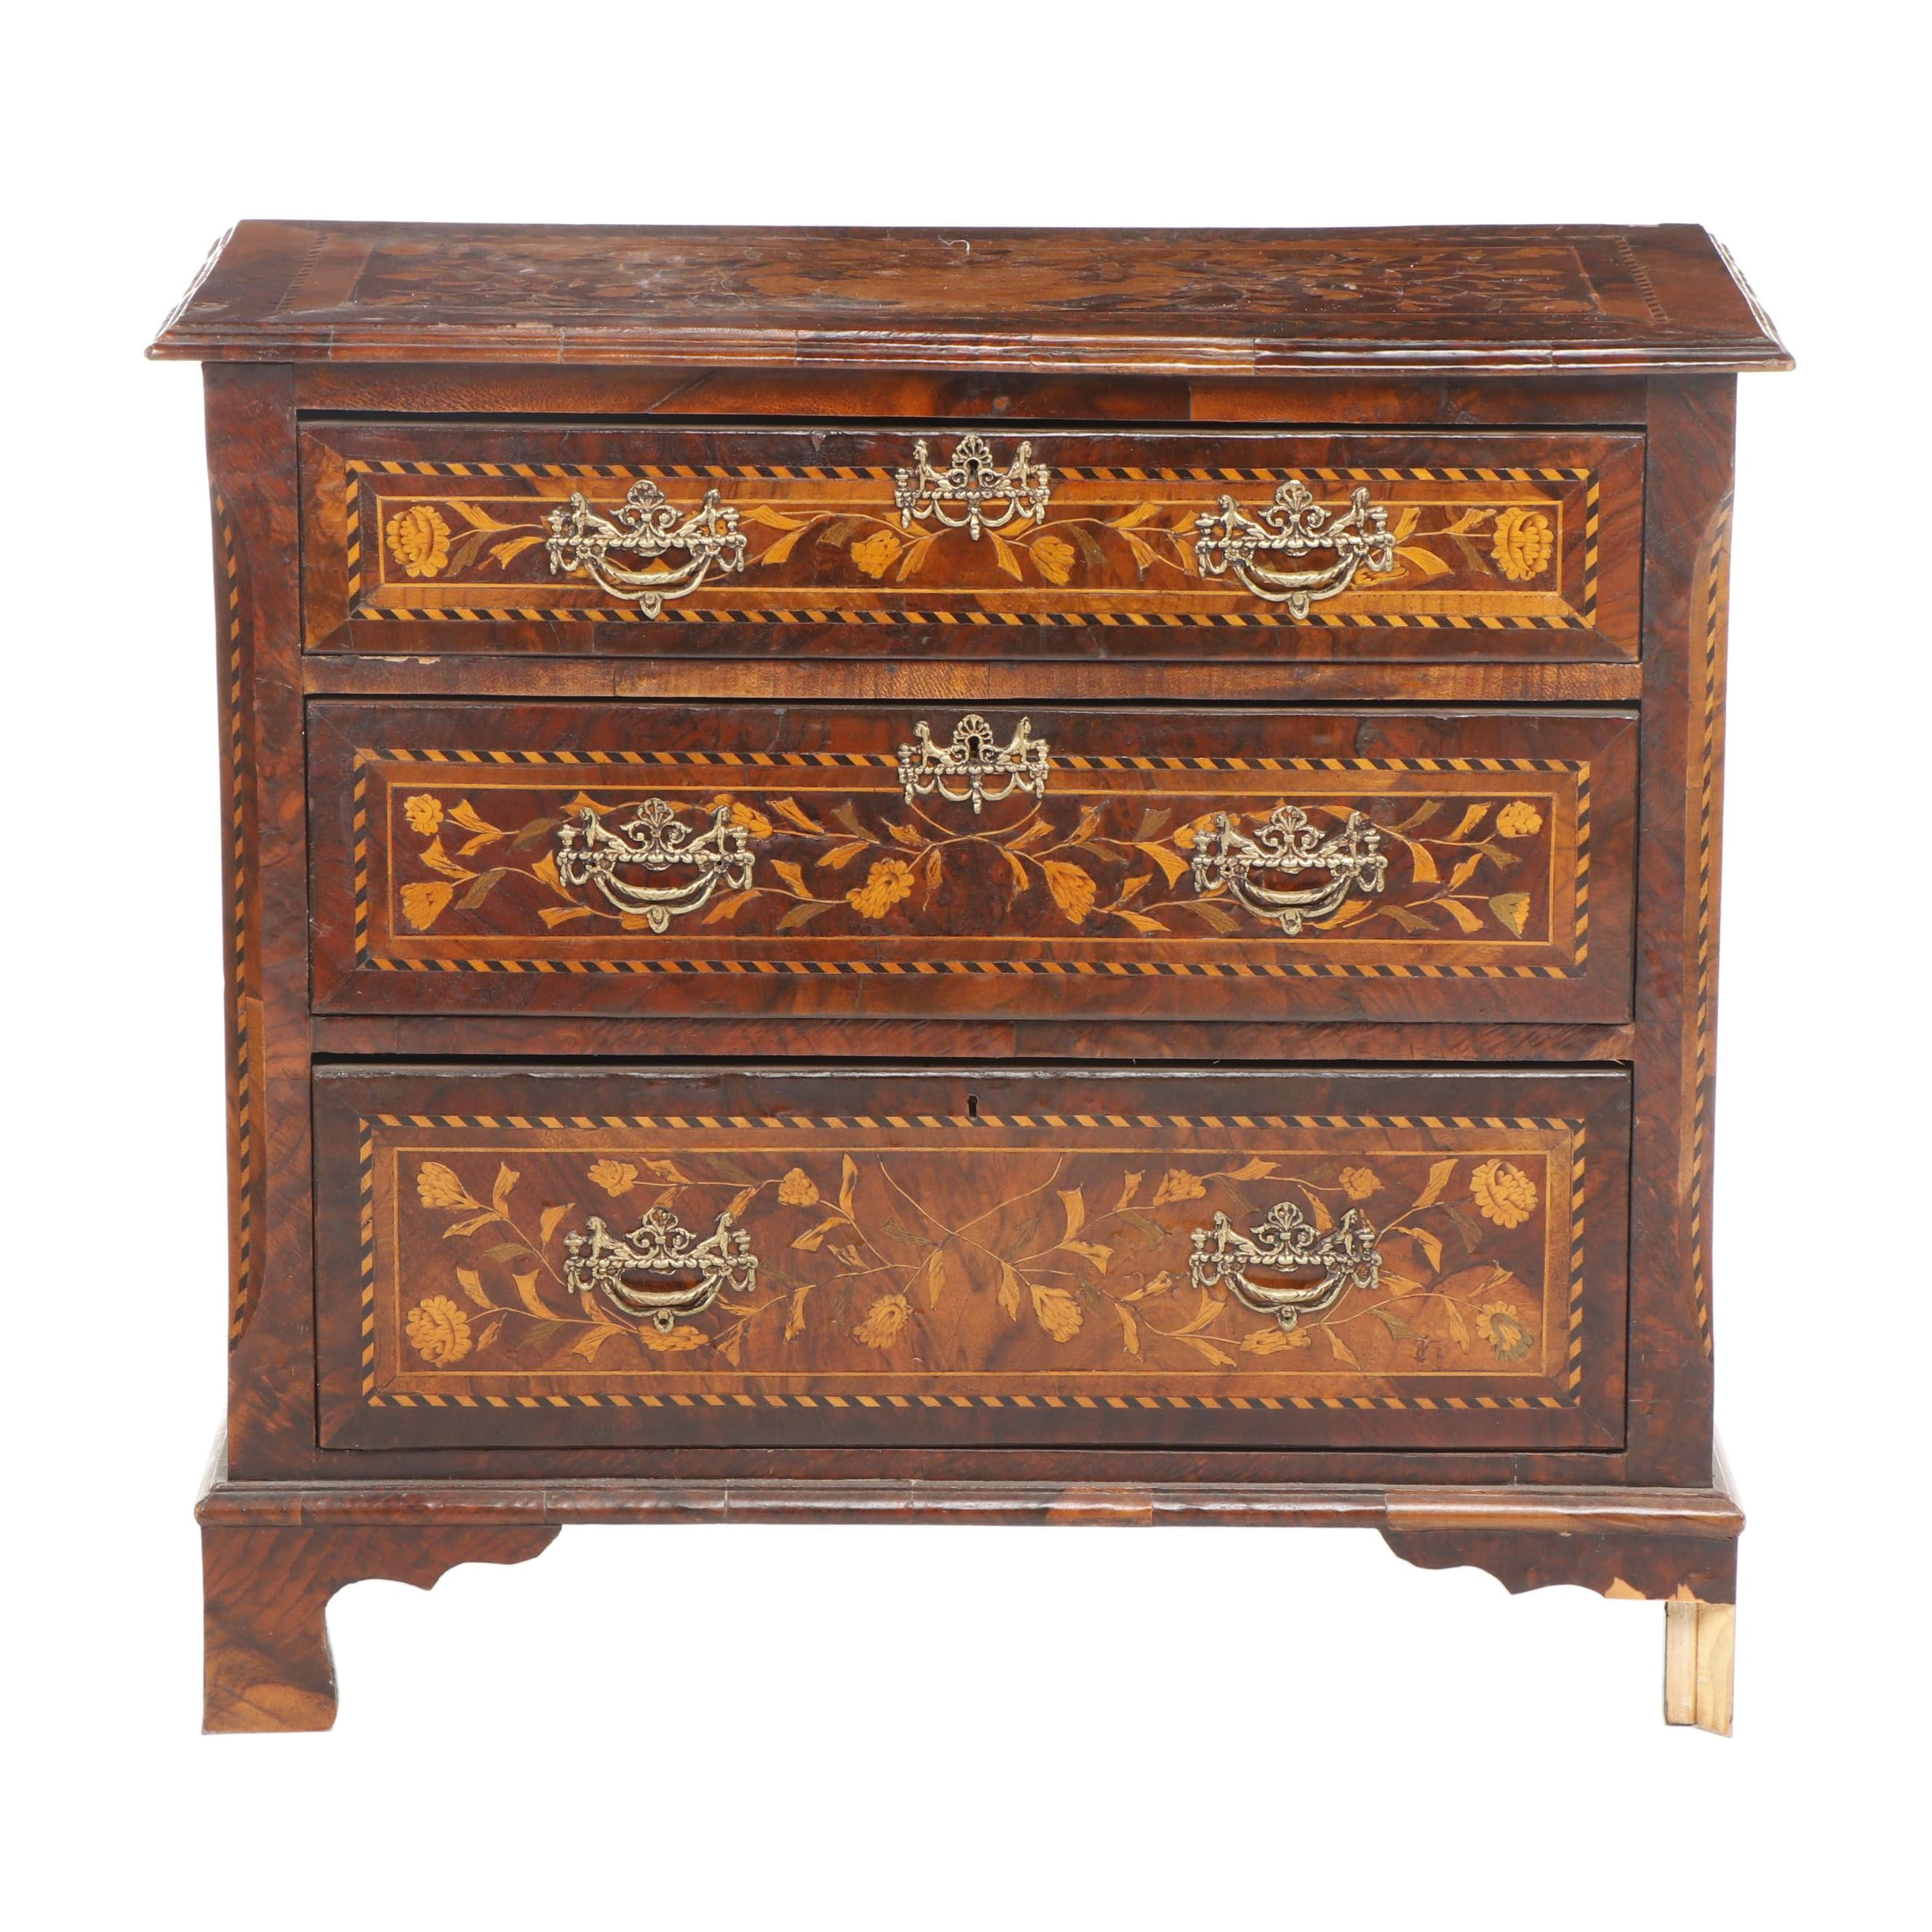 Dutch String-Inlaid and Marquetry Rosewood Chest of Drawers, Circa 1850